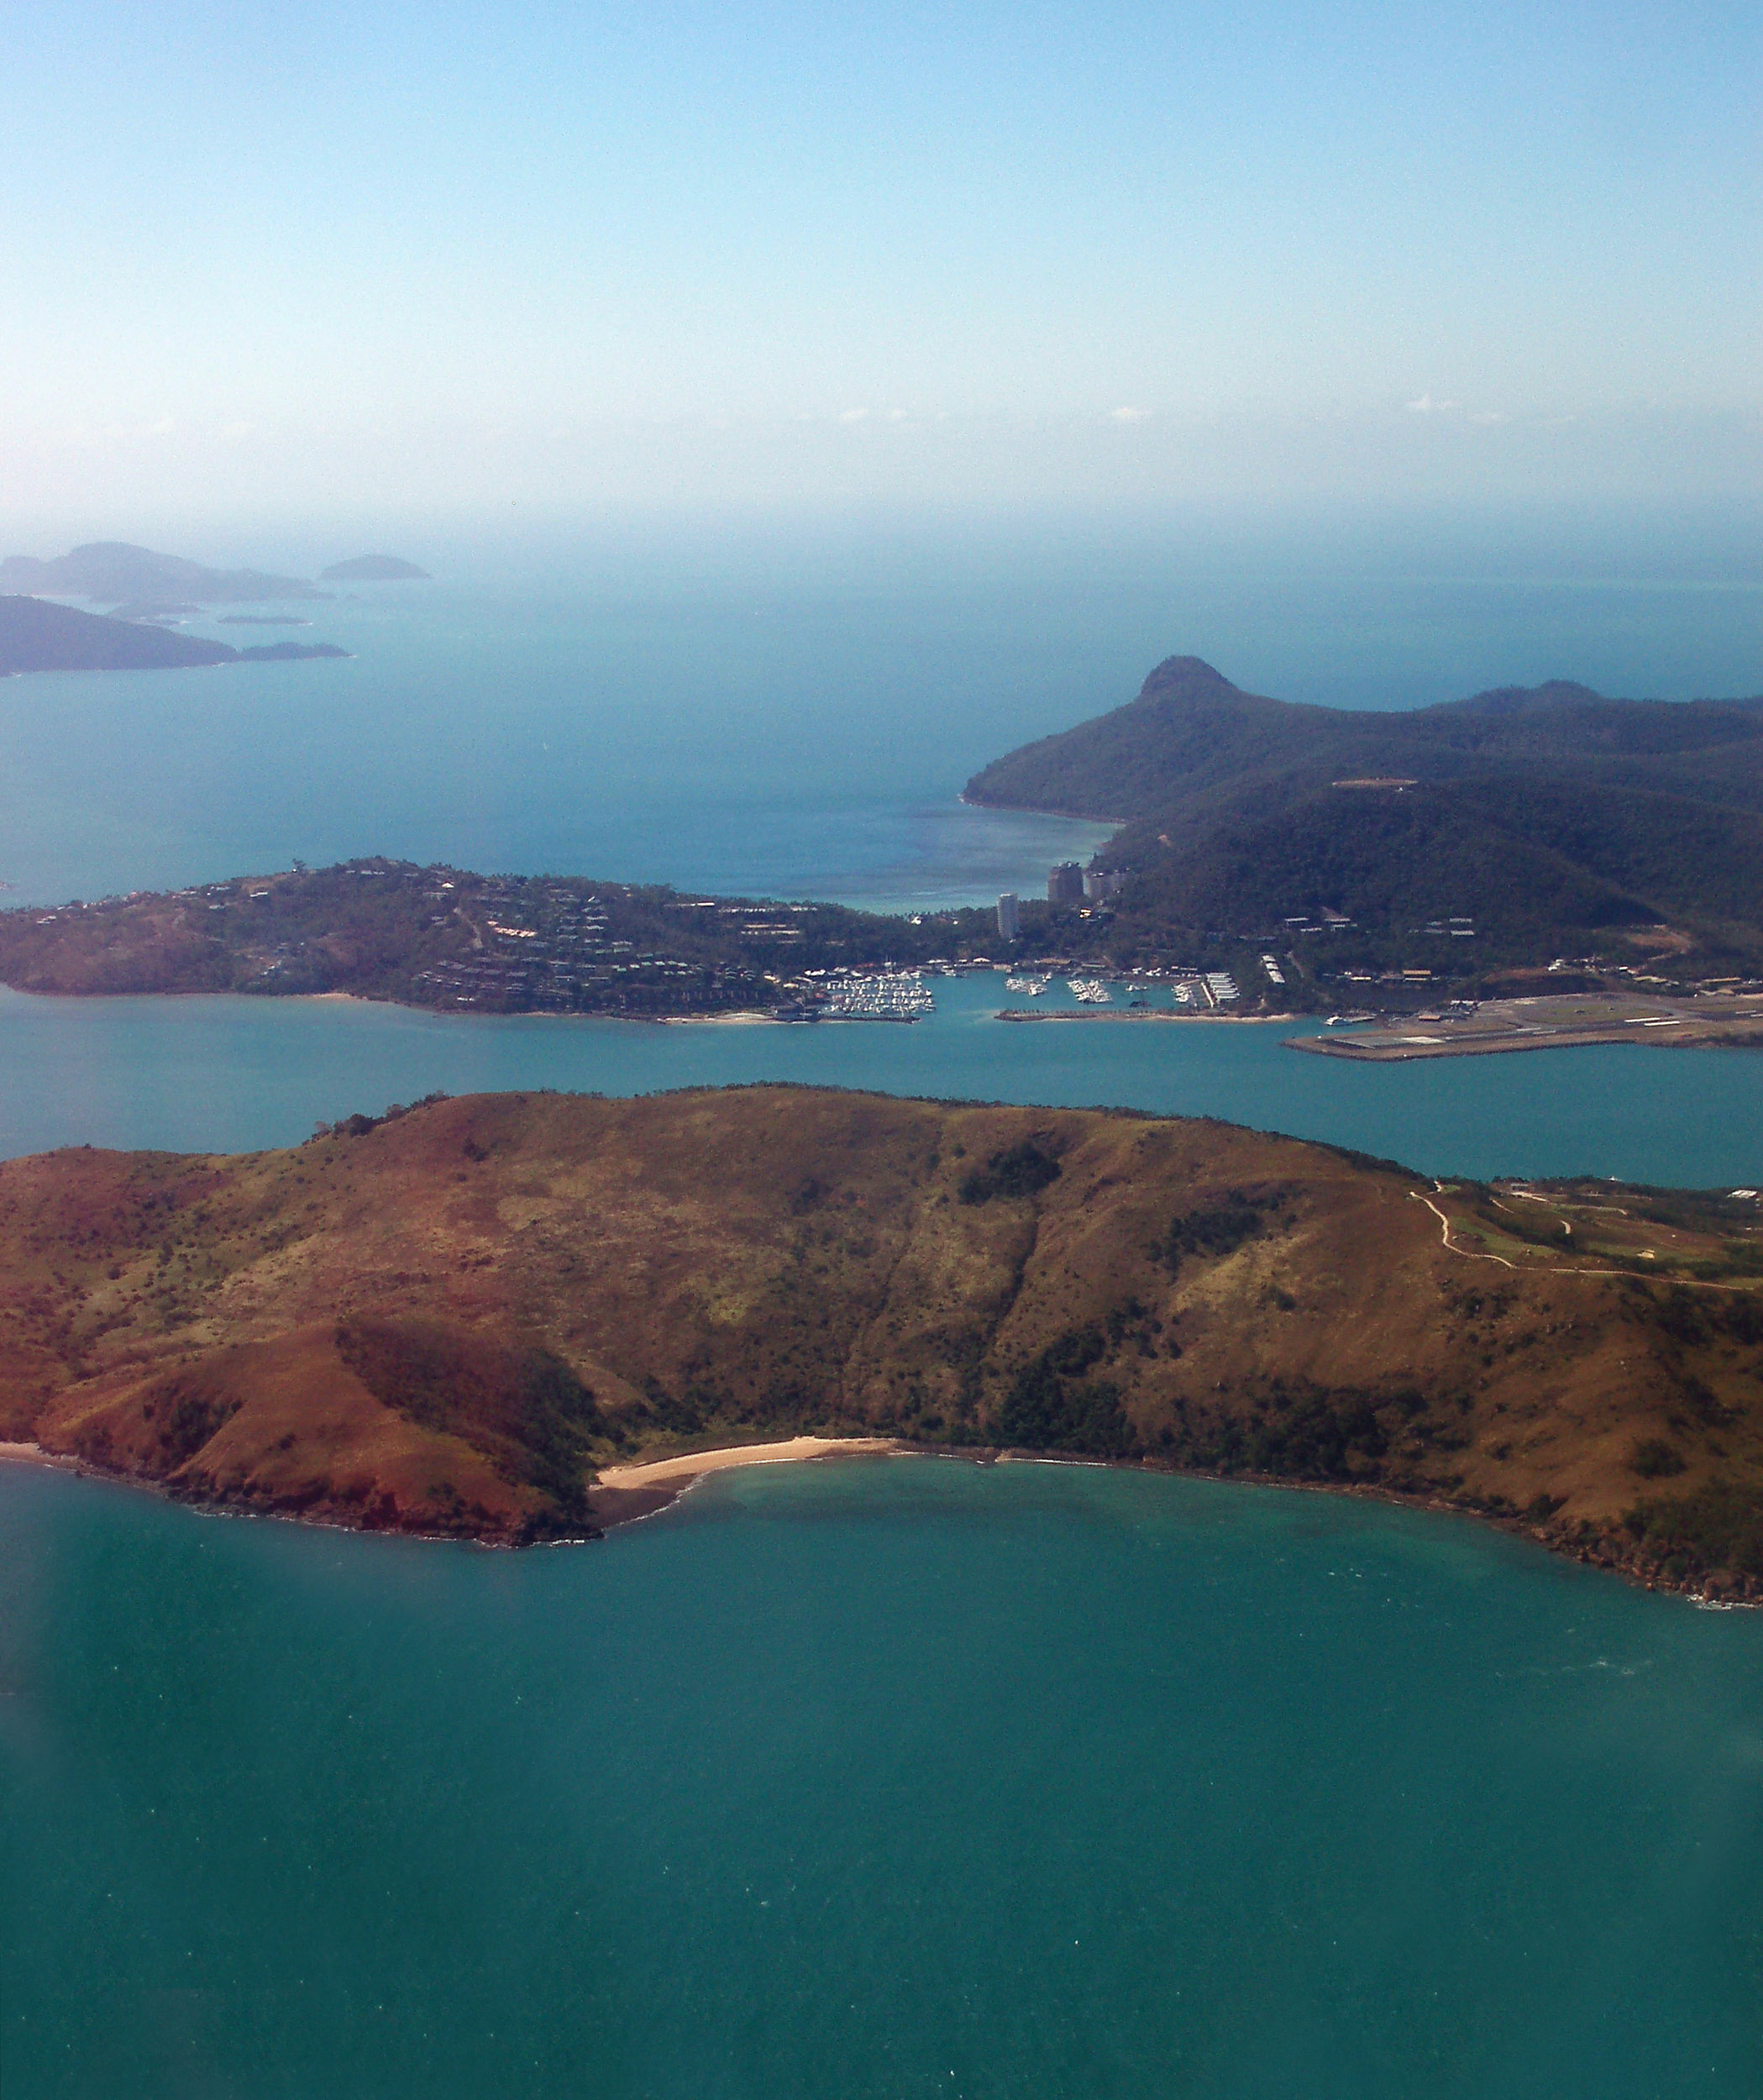 aerial veiw of dent island with hamilton island to the rear, whitsundays, queensland